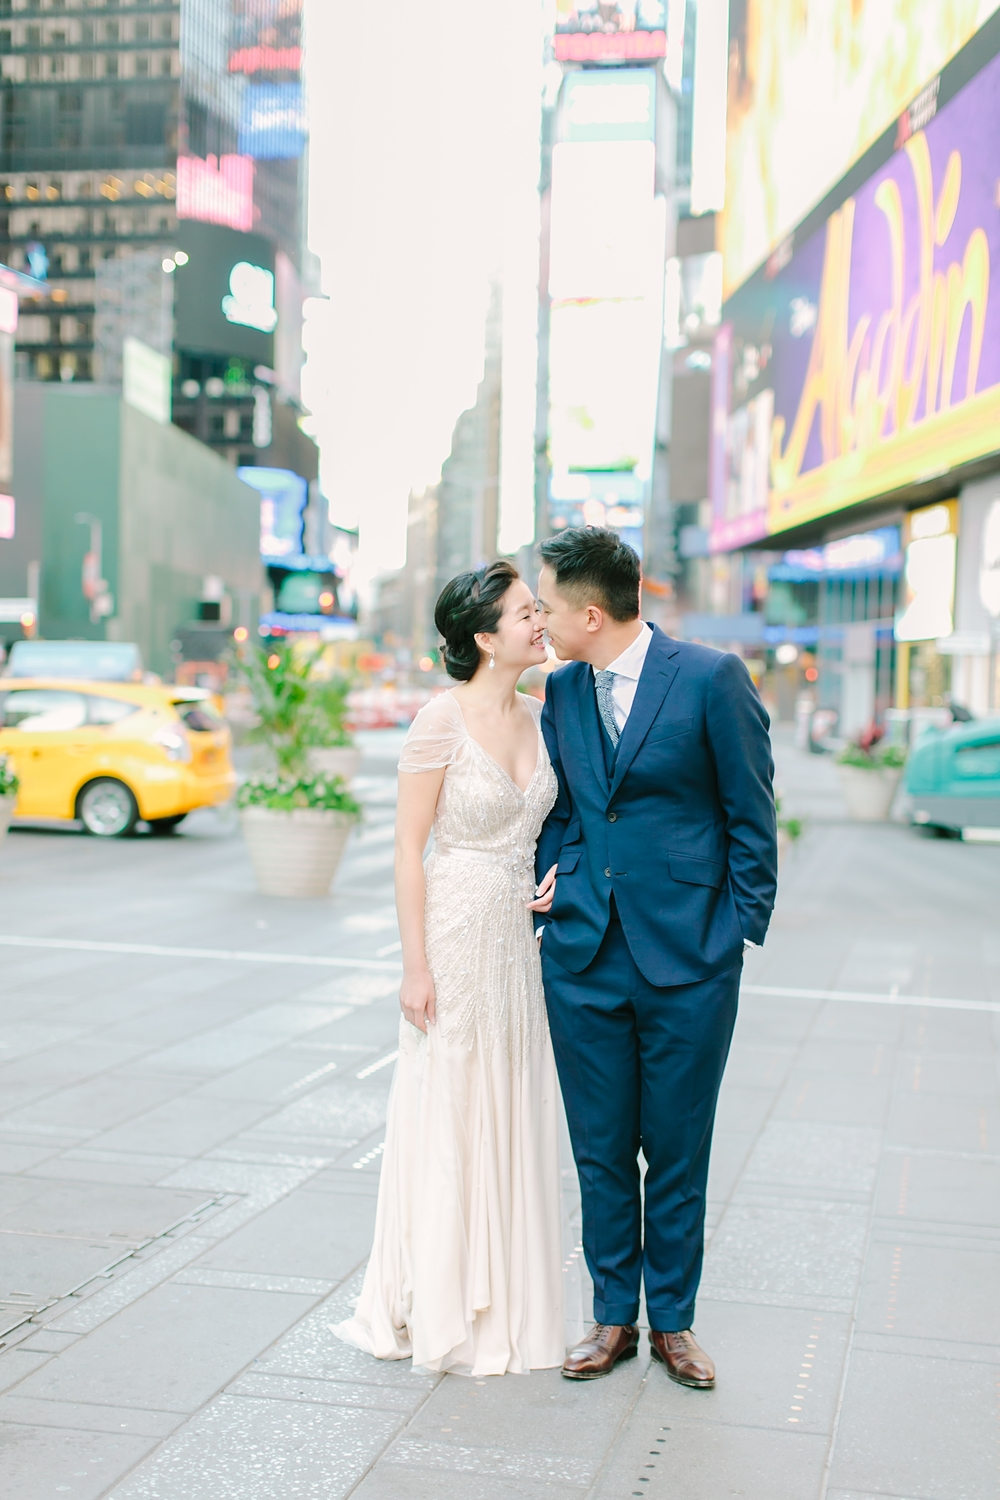 times_square_central_park_new_york_wedding_photos_0001.jpg